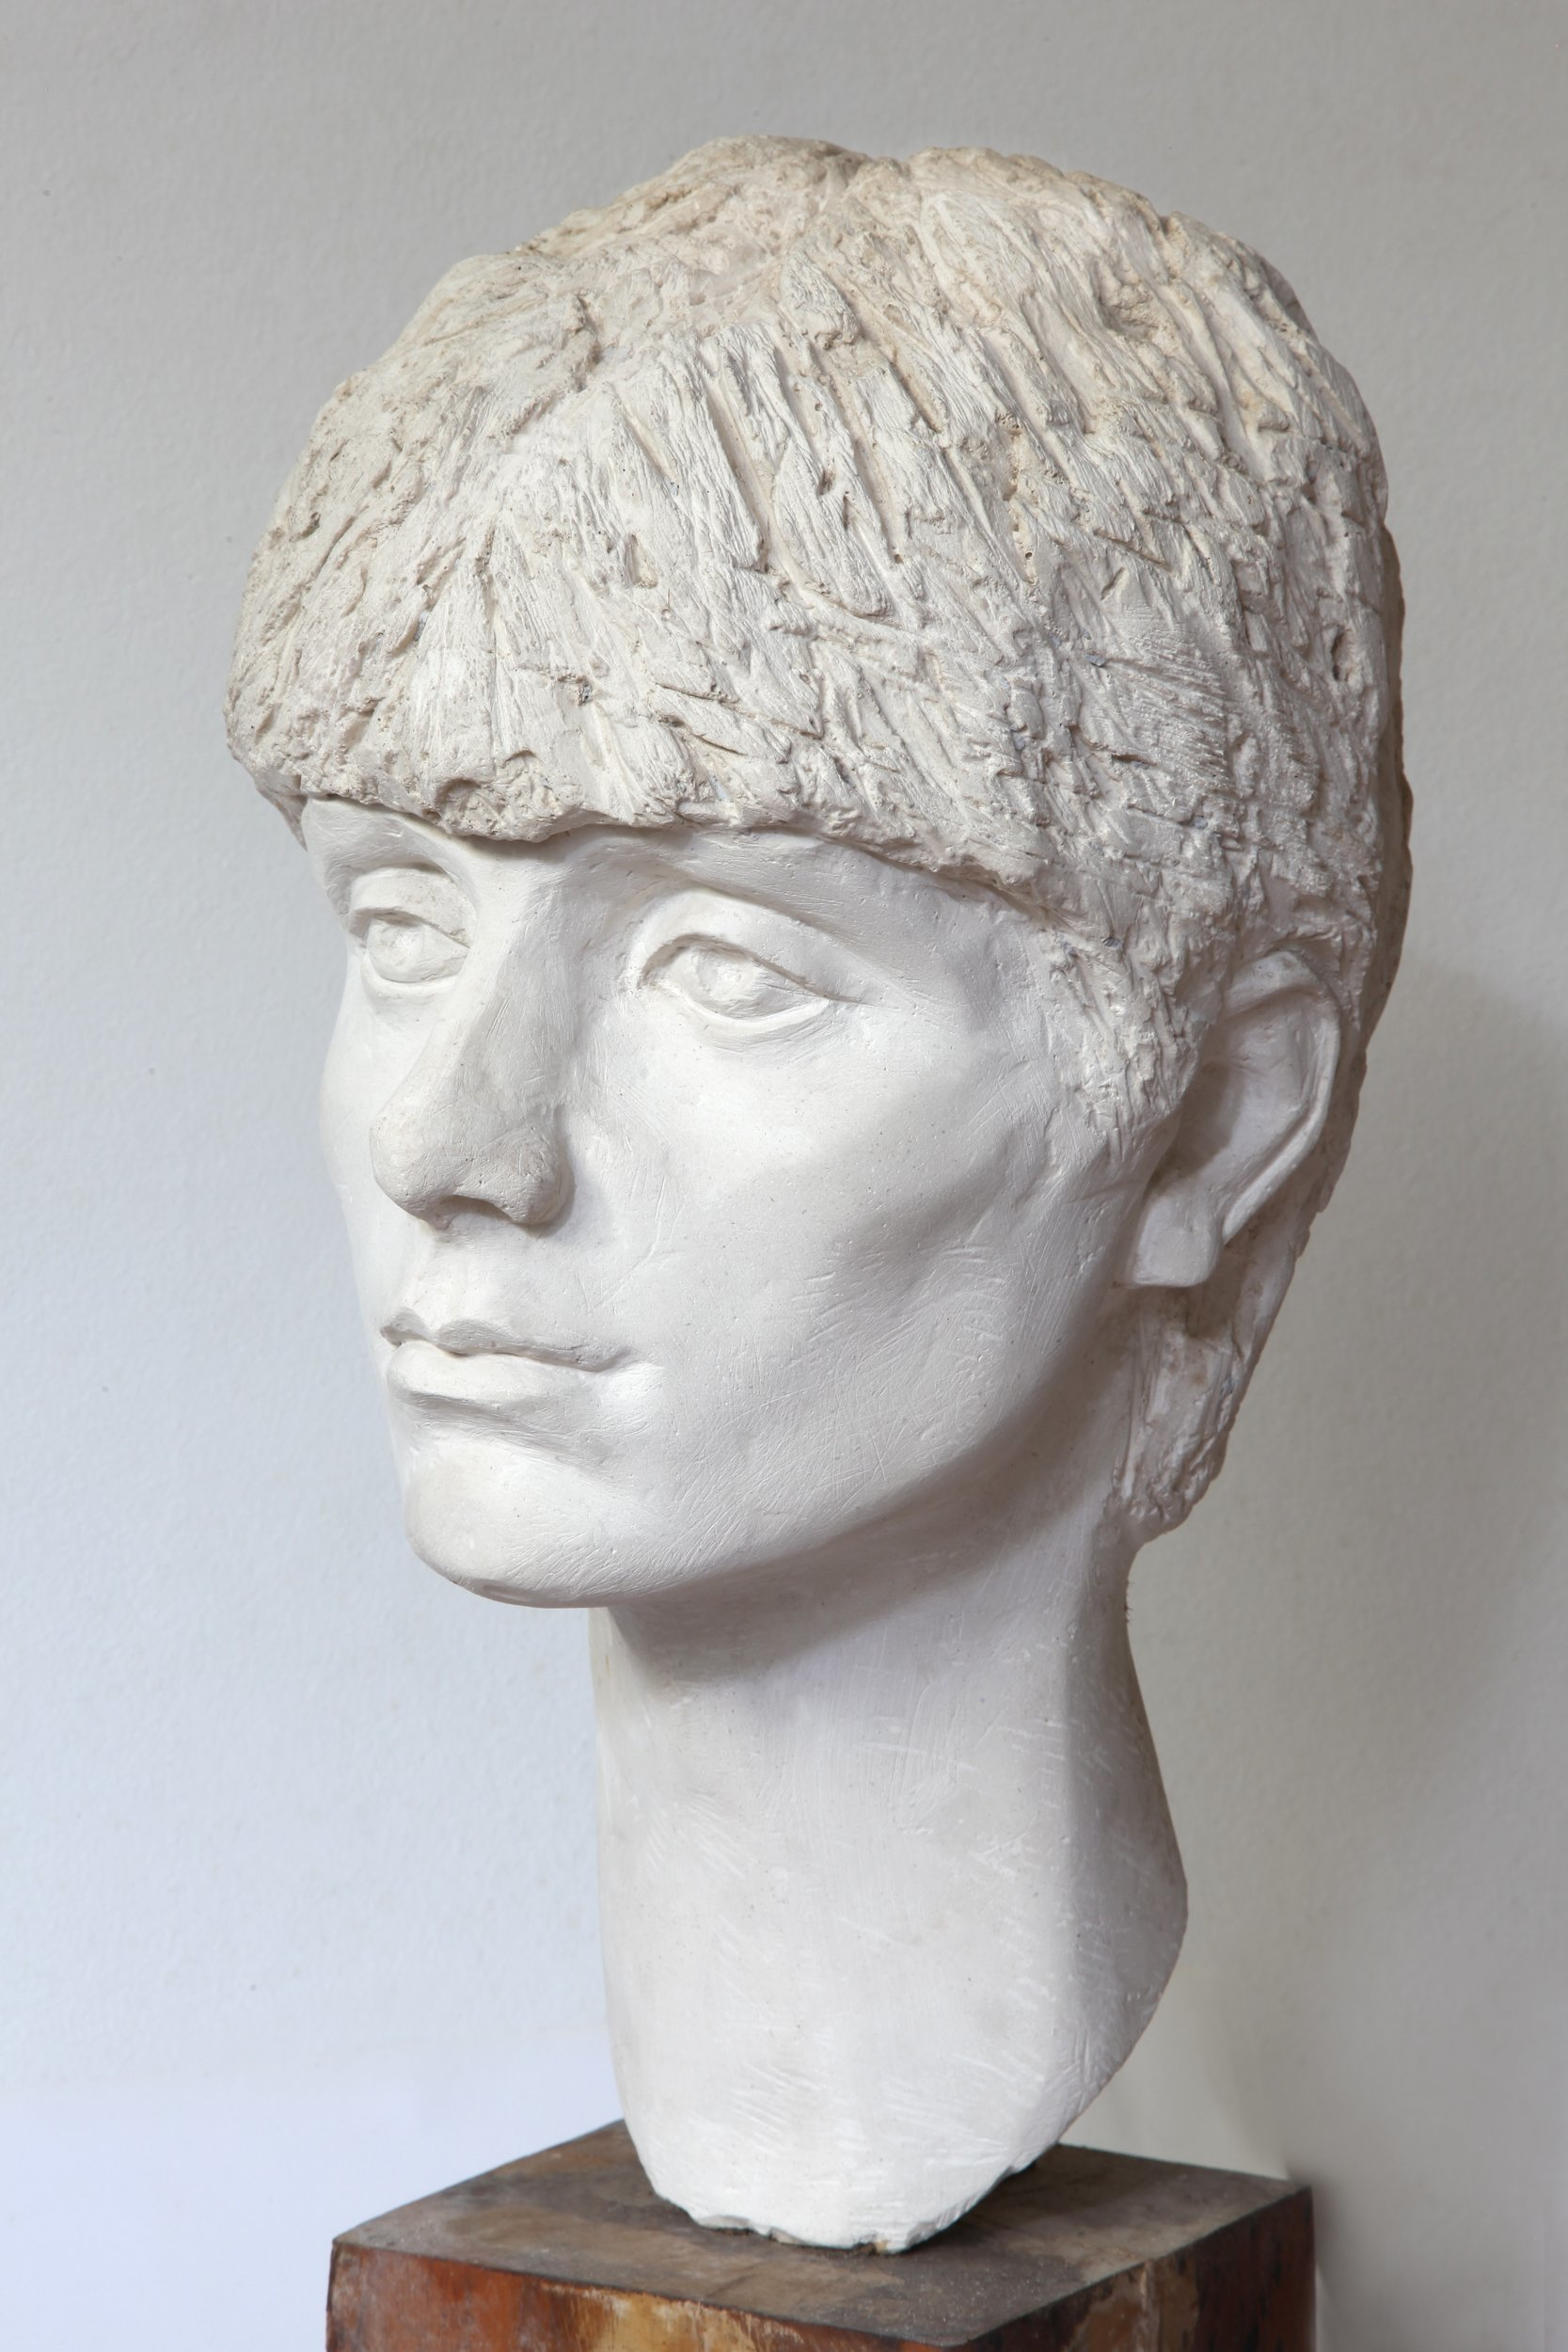 Rossen Stanoev; Vanya, 1982, Original Sculpture Clay, 24 x 50 cm. Artwork description: 241 gypsum, Rossen Stanoev, art, fine art, Bulgarian fine art, contemporary masters of art, contemporary art, masterpiece, art market, piece of art, artist, art dealer, gallery, online gallery, internet gallery, art gallery, buy art, art online, ...